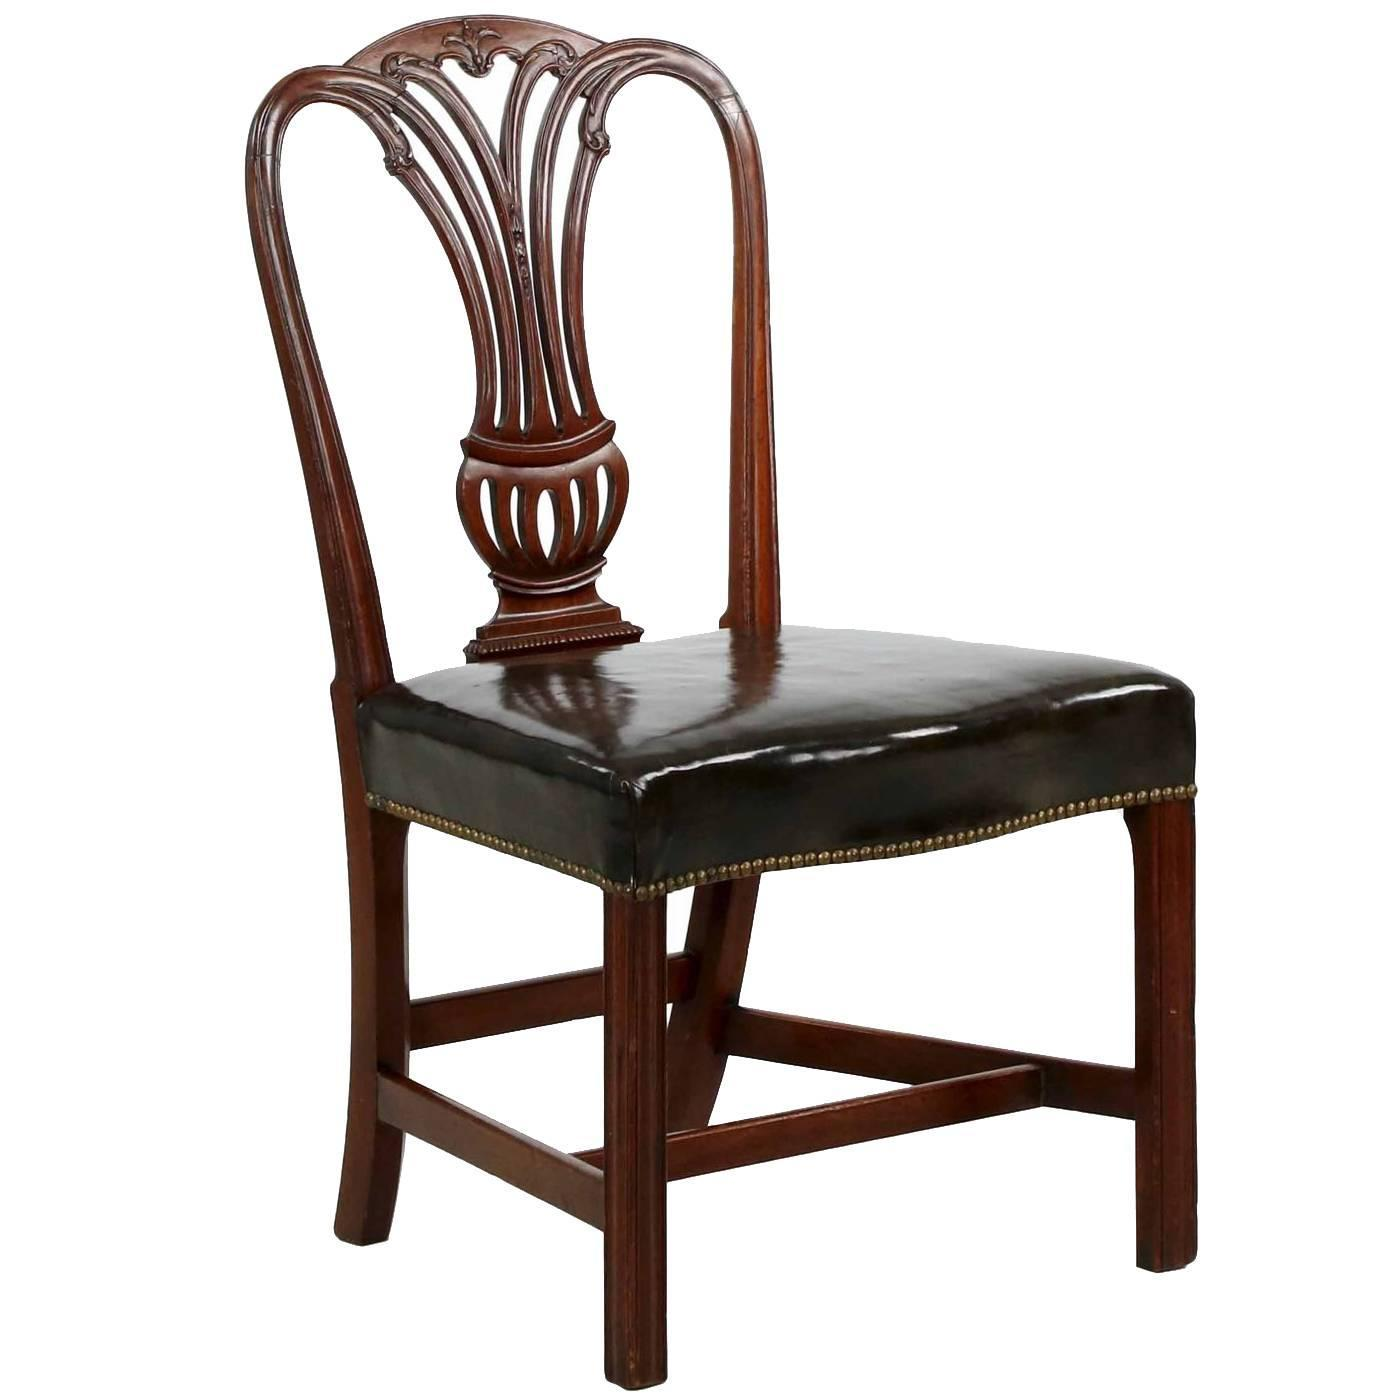 English Georgian Carved Mahogany Leather Antique Side Chair, Late 18th  Century at 1stdibs - English Georgian Carved Mahogany Leather Antique Side Chair, Late